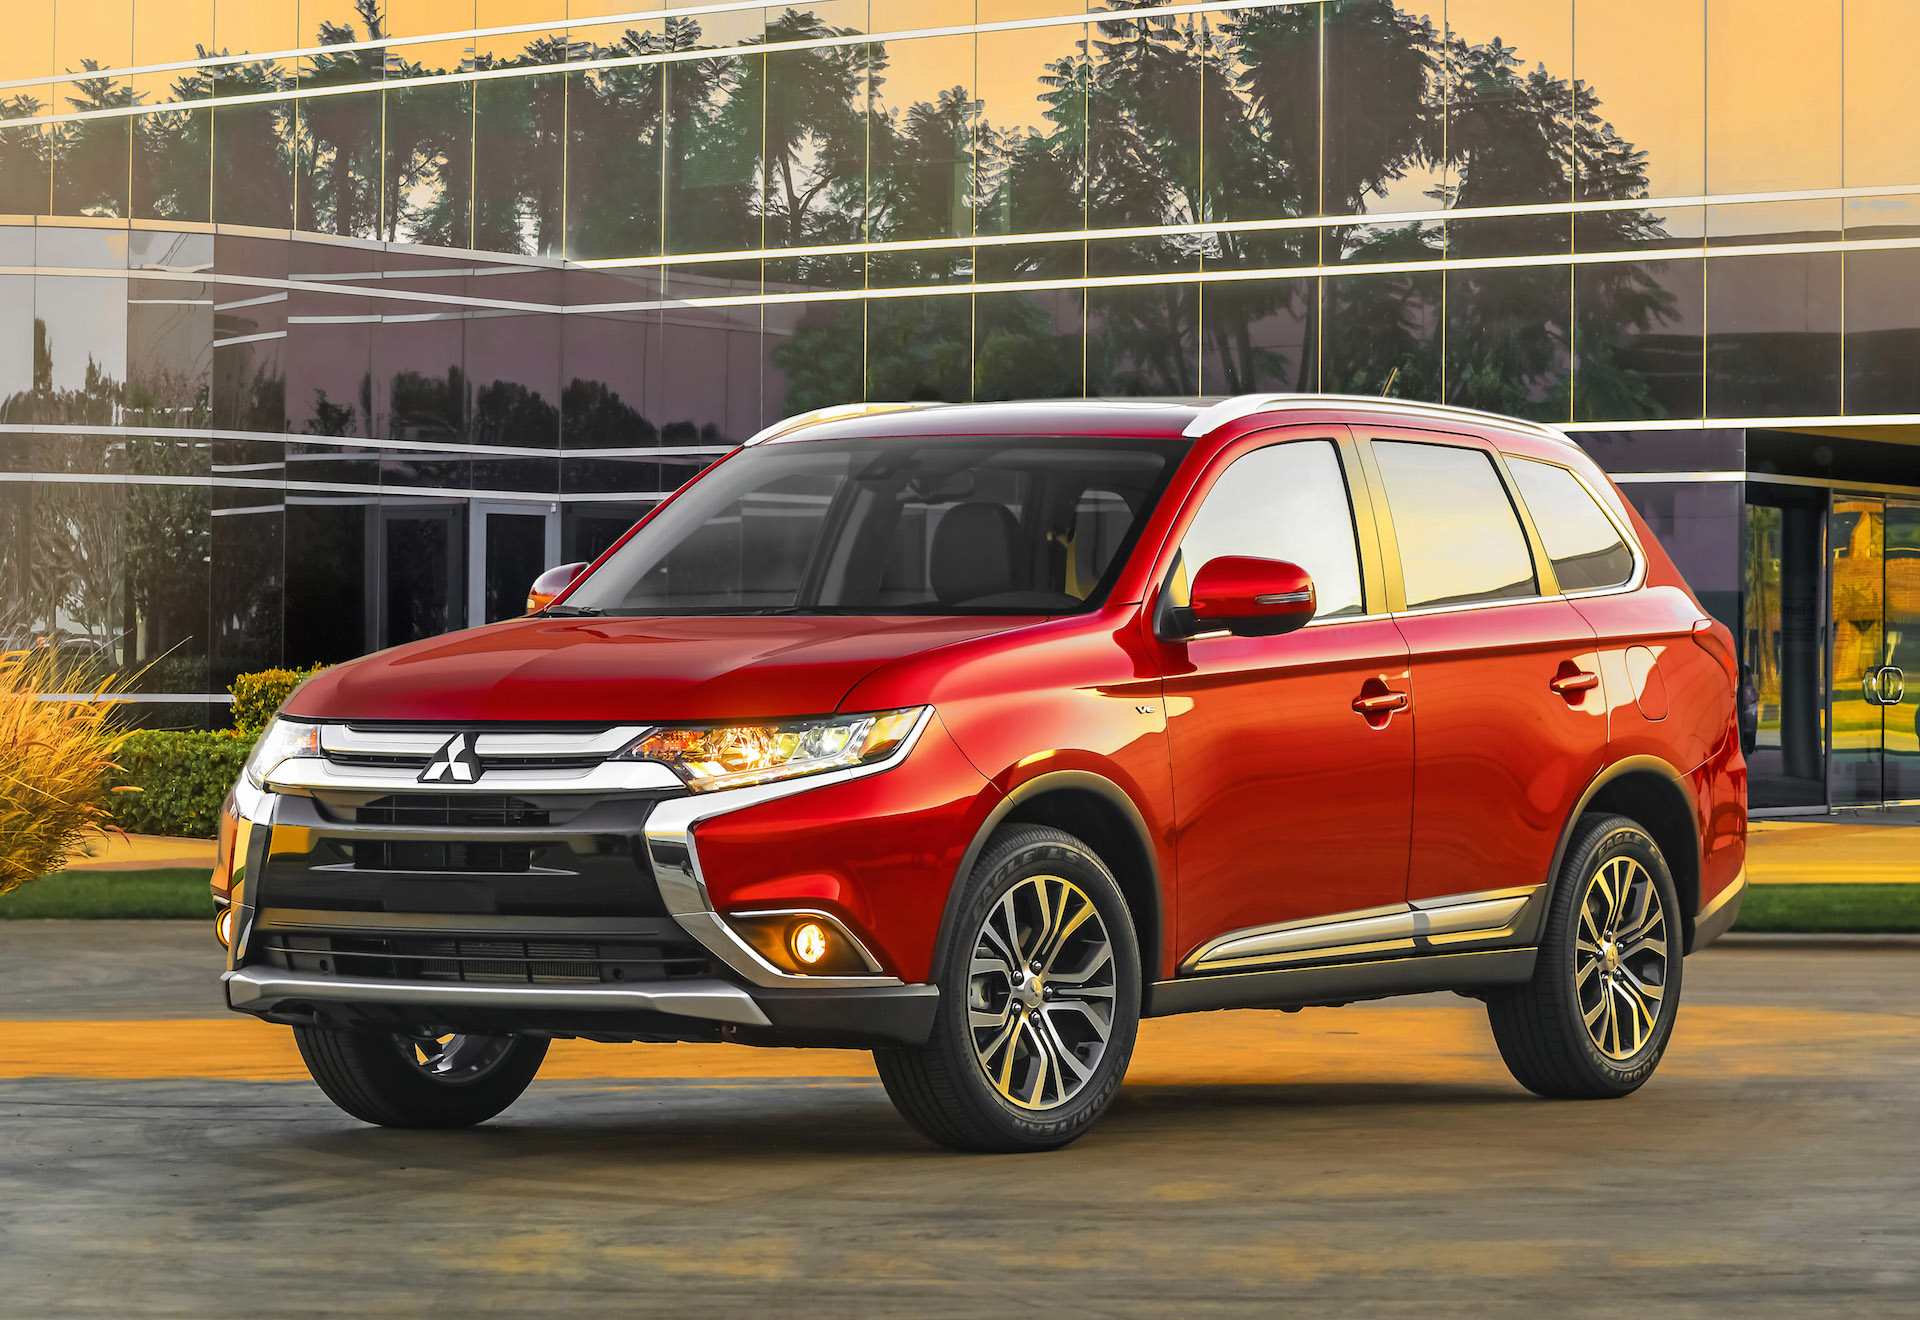 2016 Mitsubishi Endeavor – pictures, information and specs ...